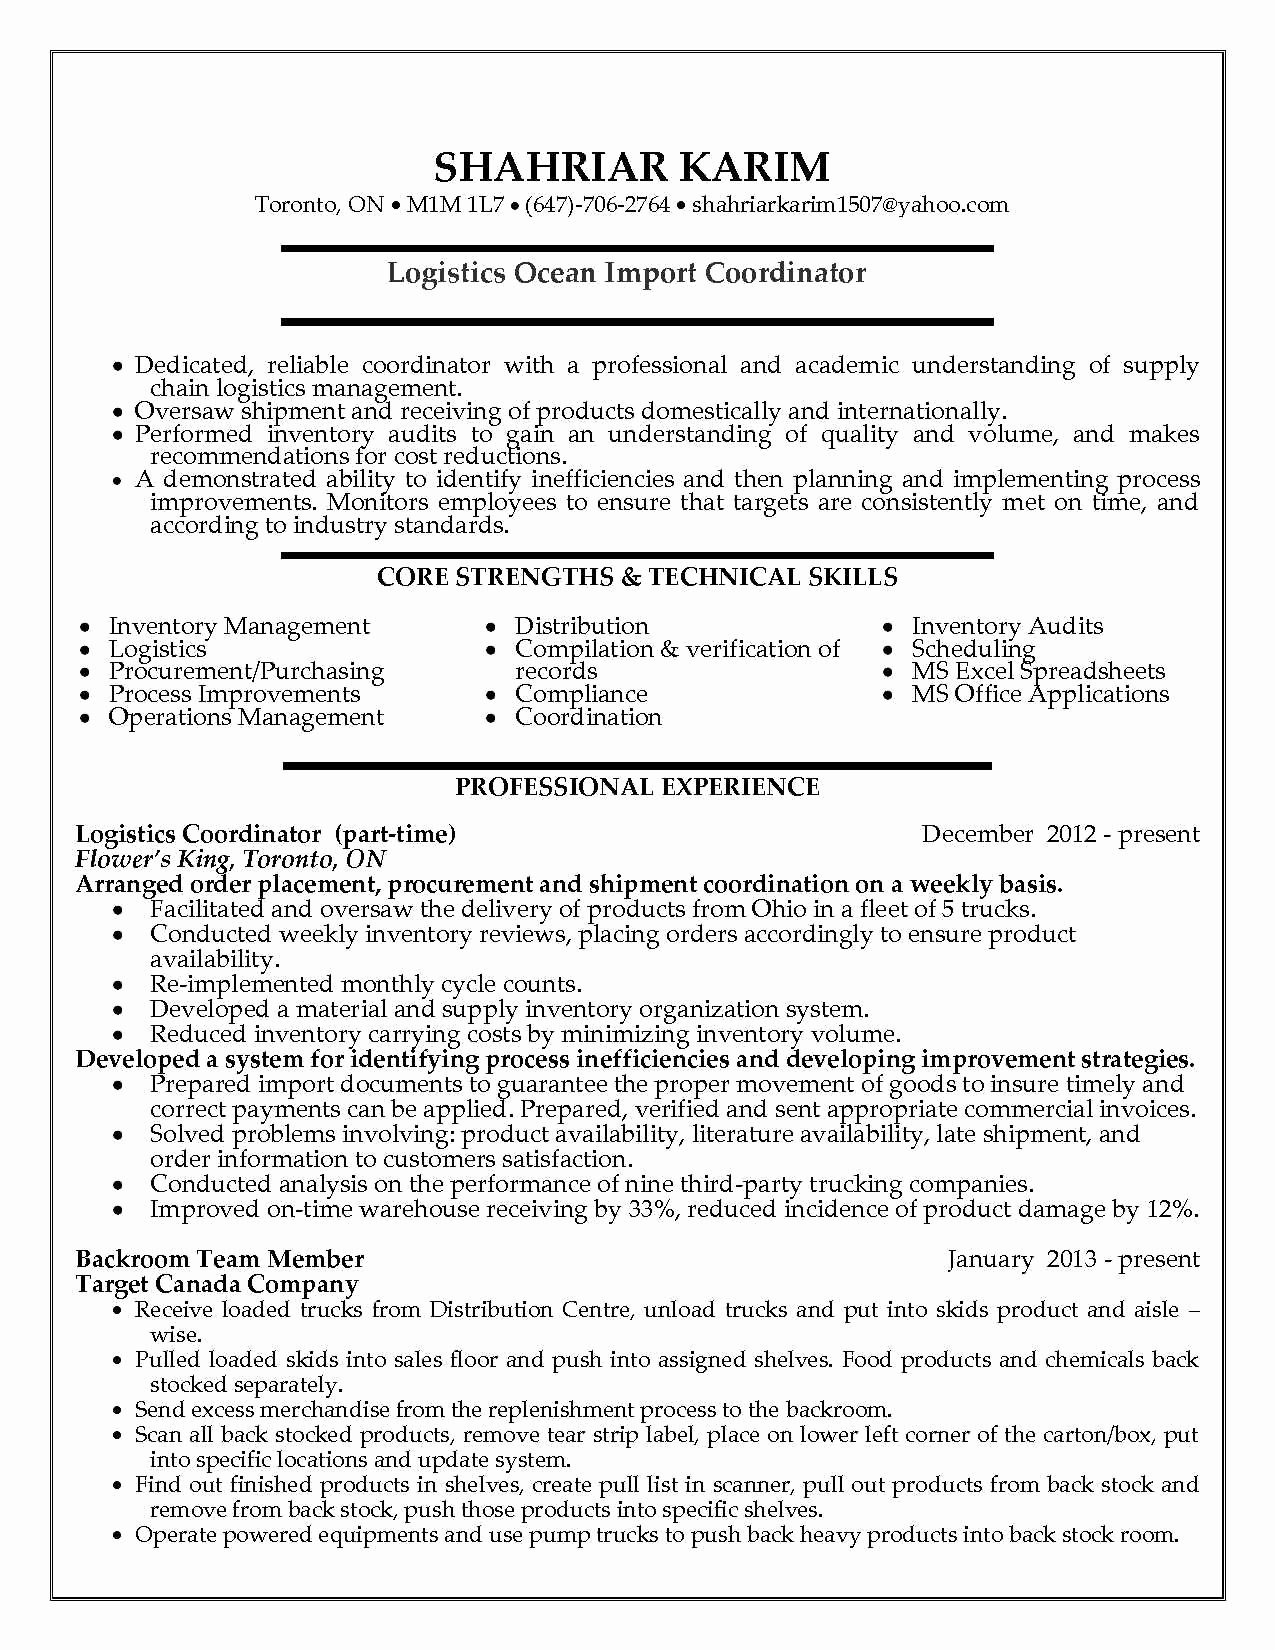 logistic coordinator resume sample logistic coordinator